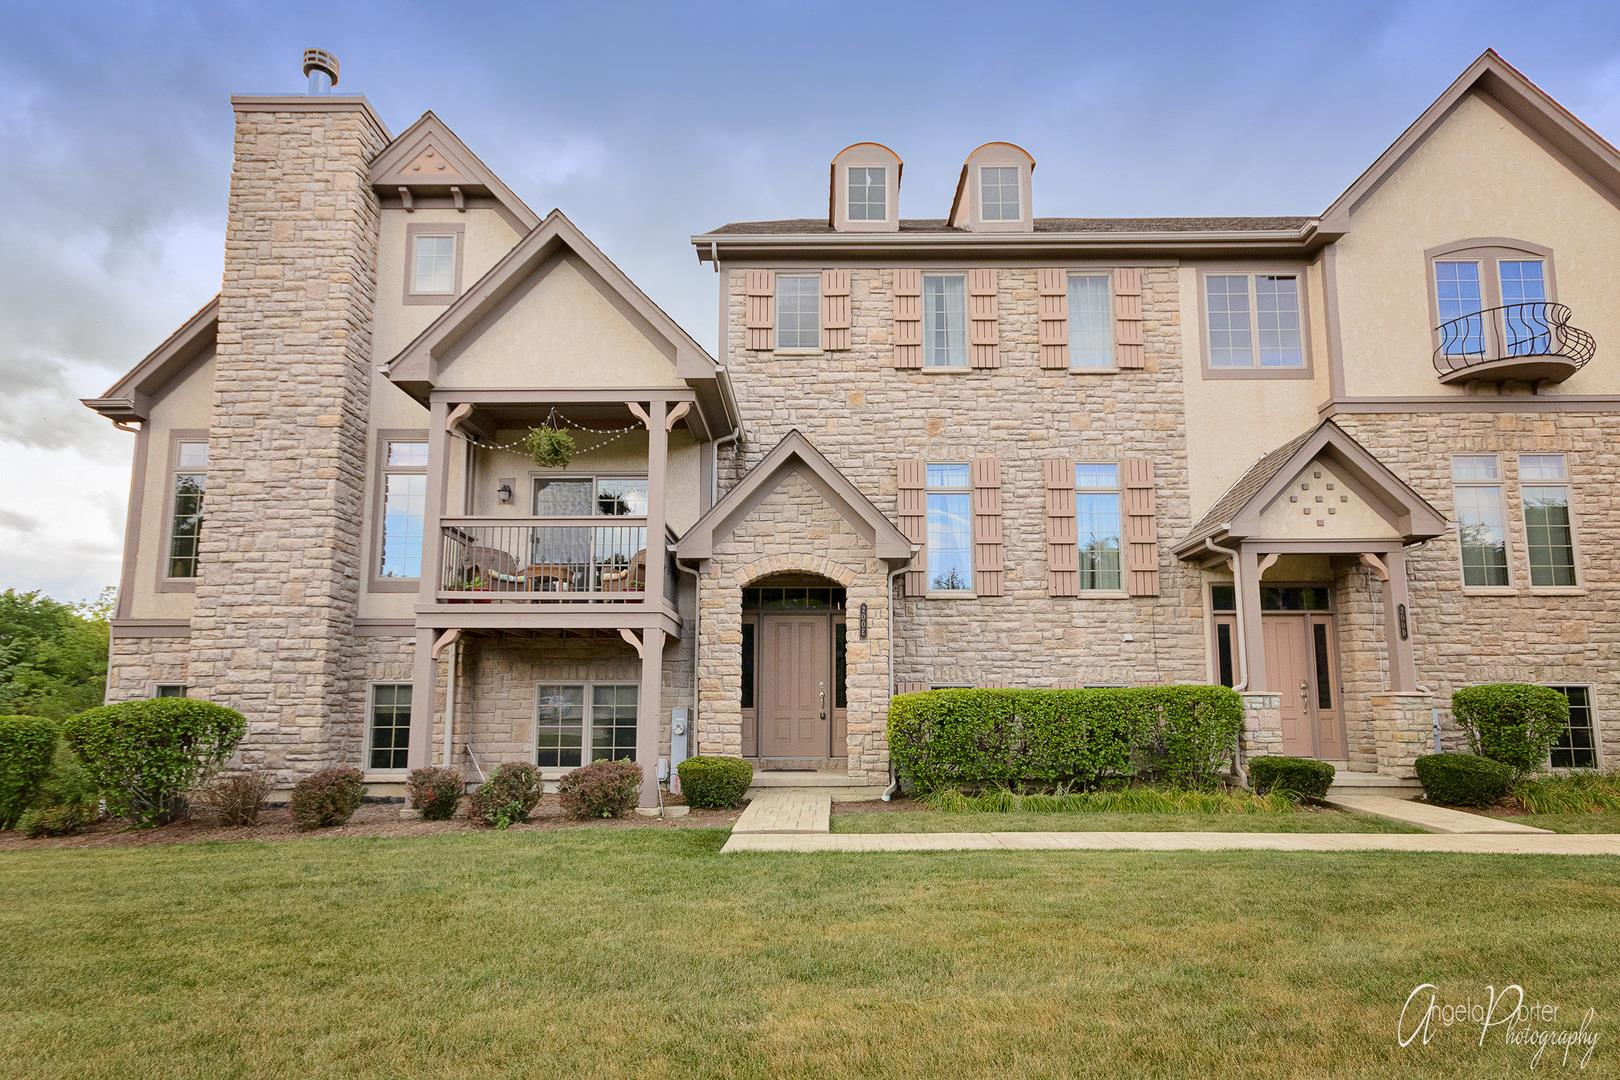 200 REGENCY Court #E, Wauconda, IL 60084 - #: 10798938